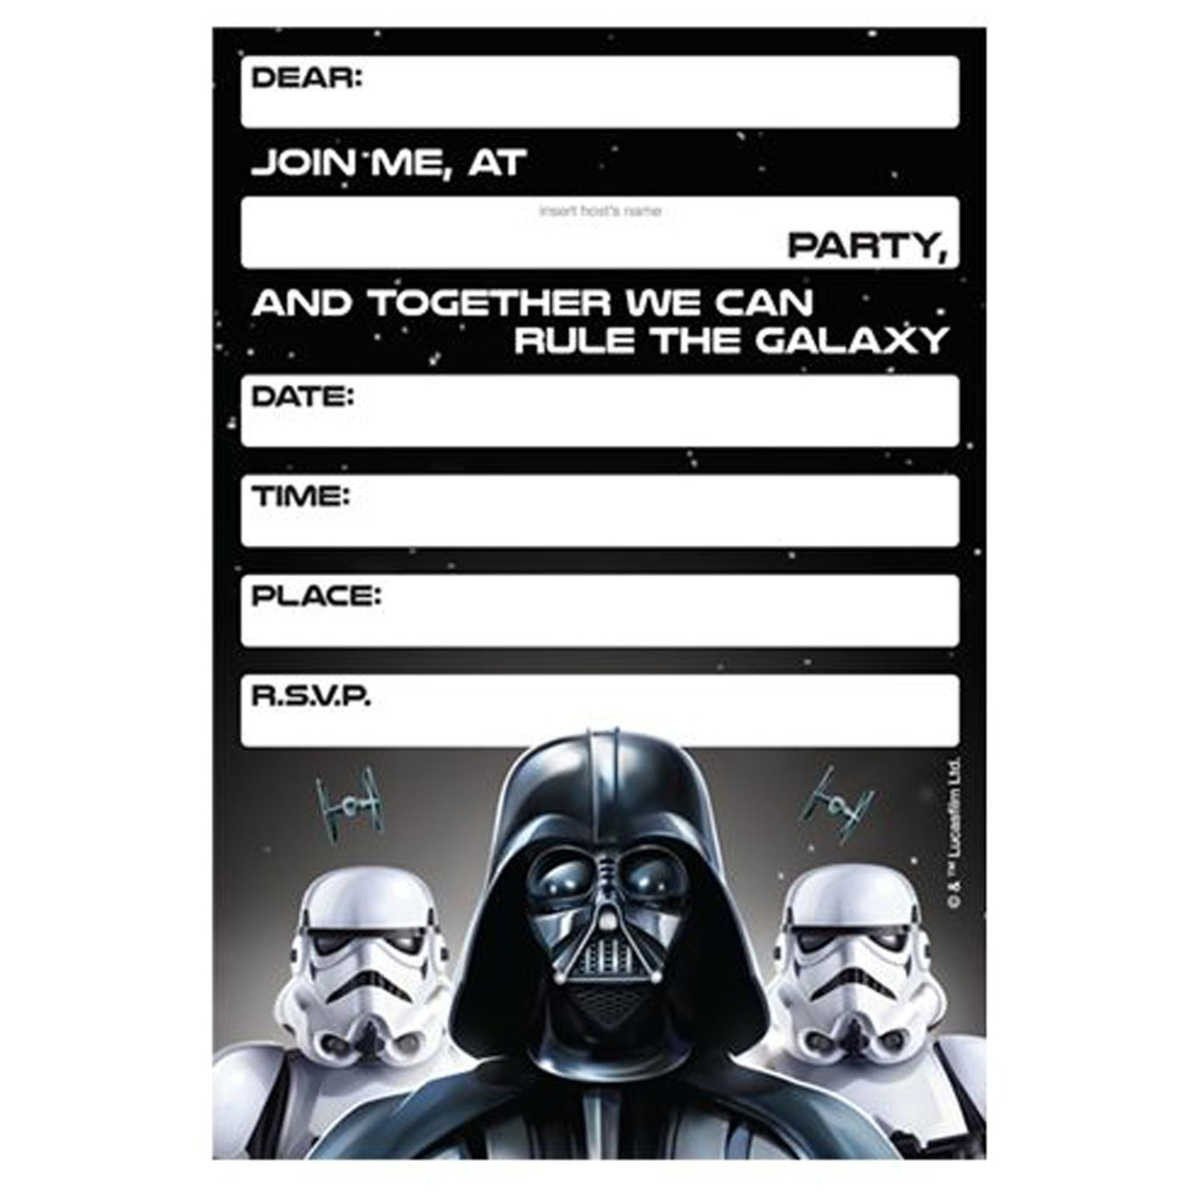 Star Wars Invitation Templates Lego Star Wars Birthday Invitations Template – Bagvania